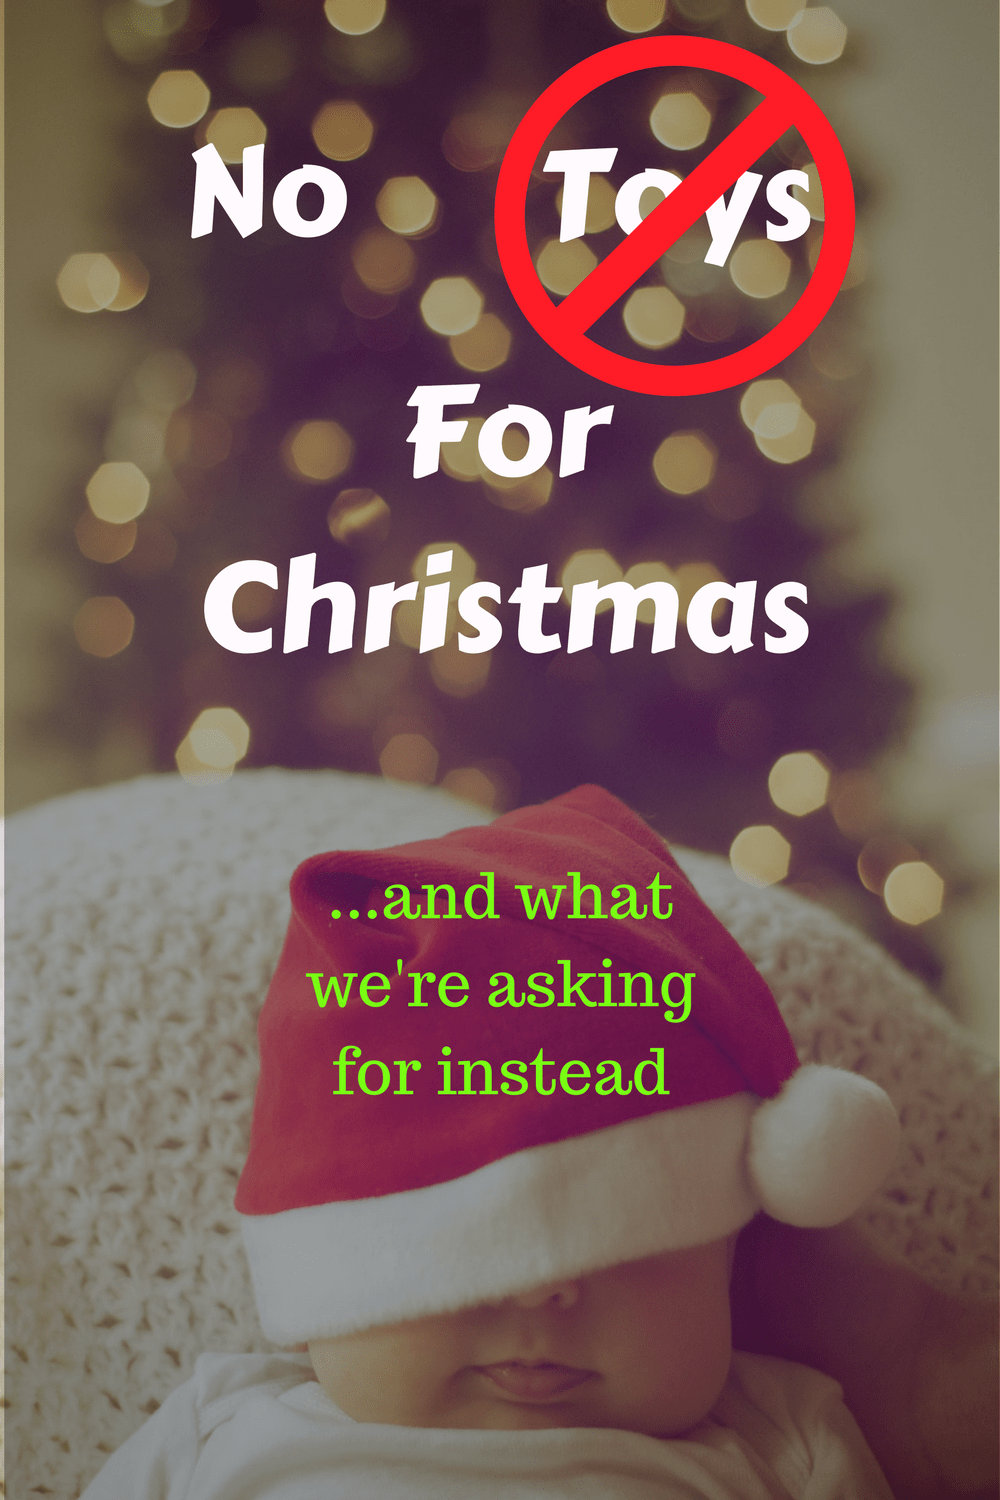 Toy alternatives for Christmas